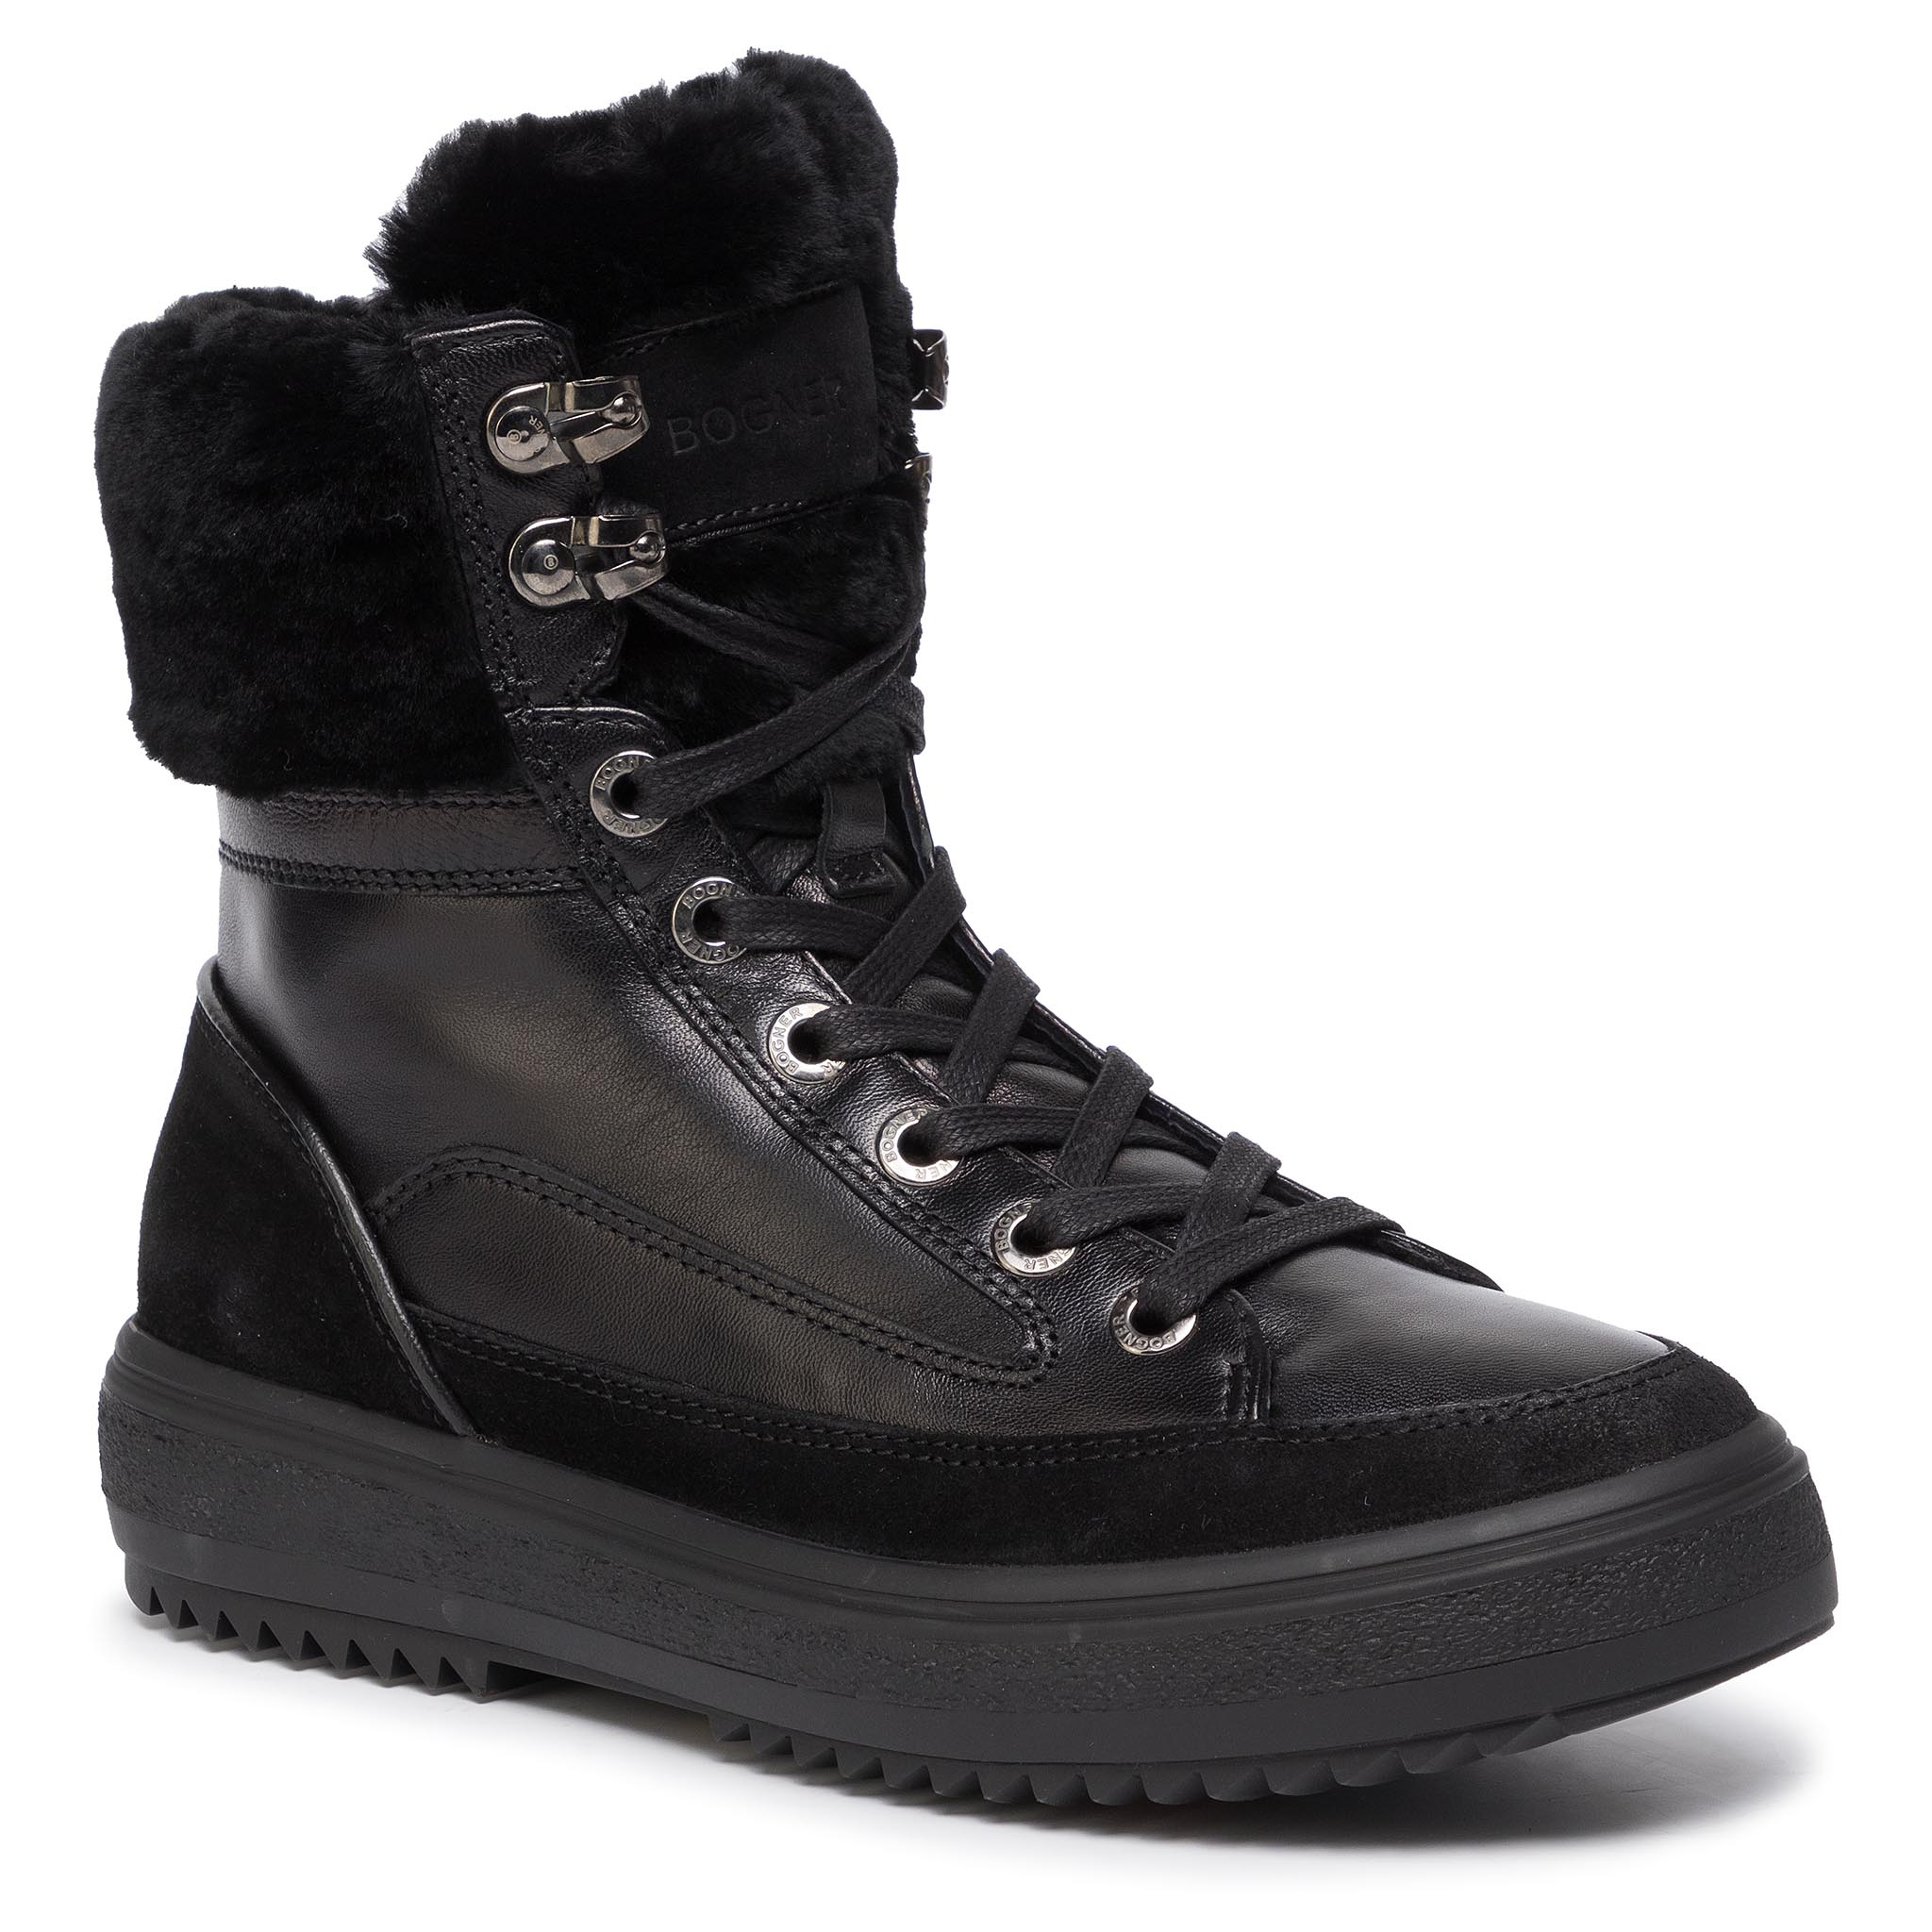 Botine BOGNER - Anchorage L 1G 293-A583 Black 01